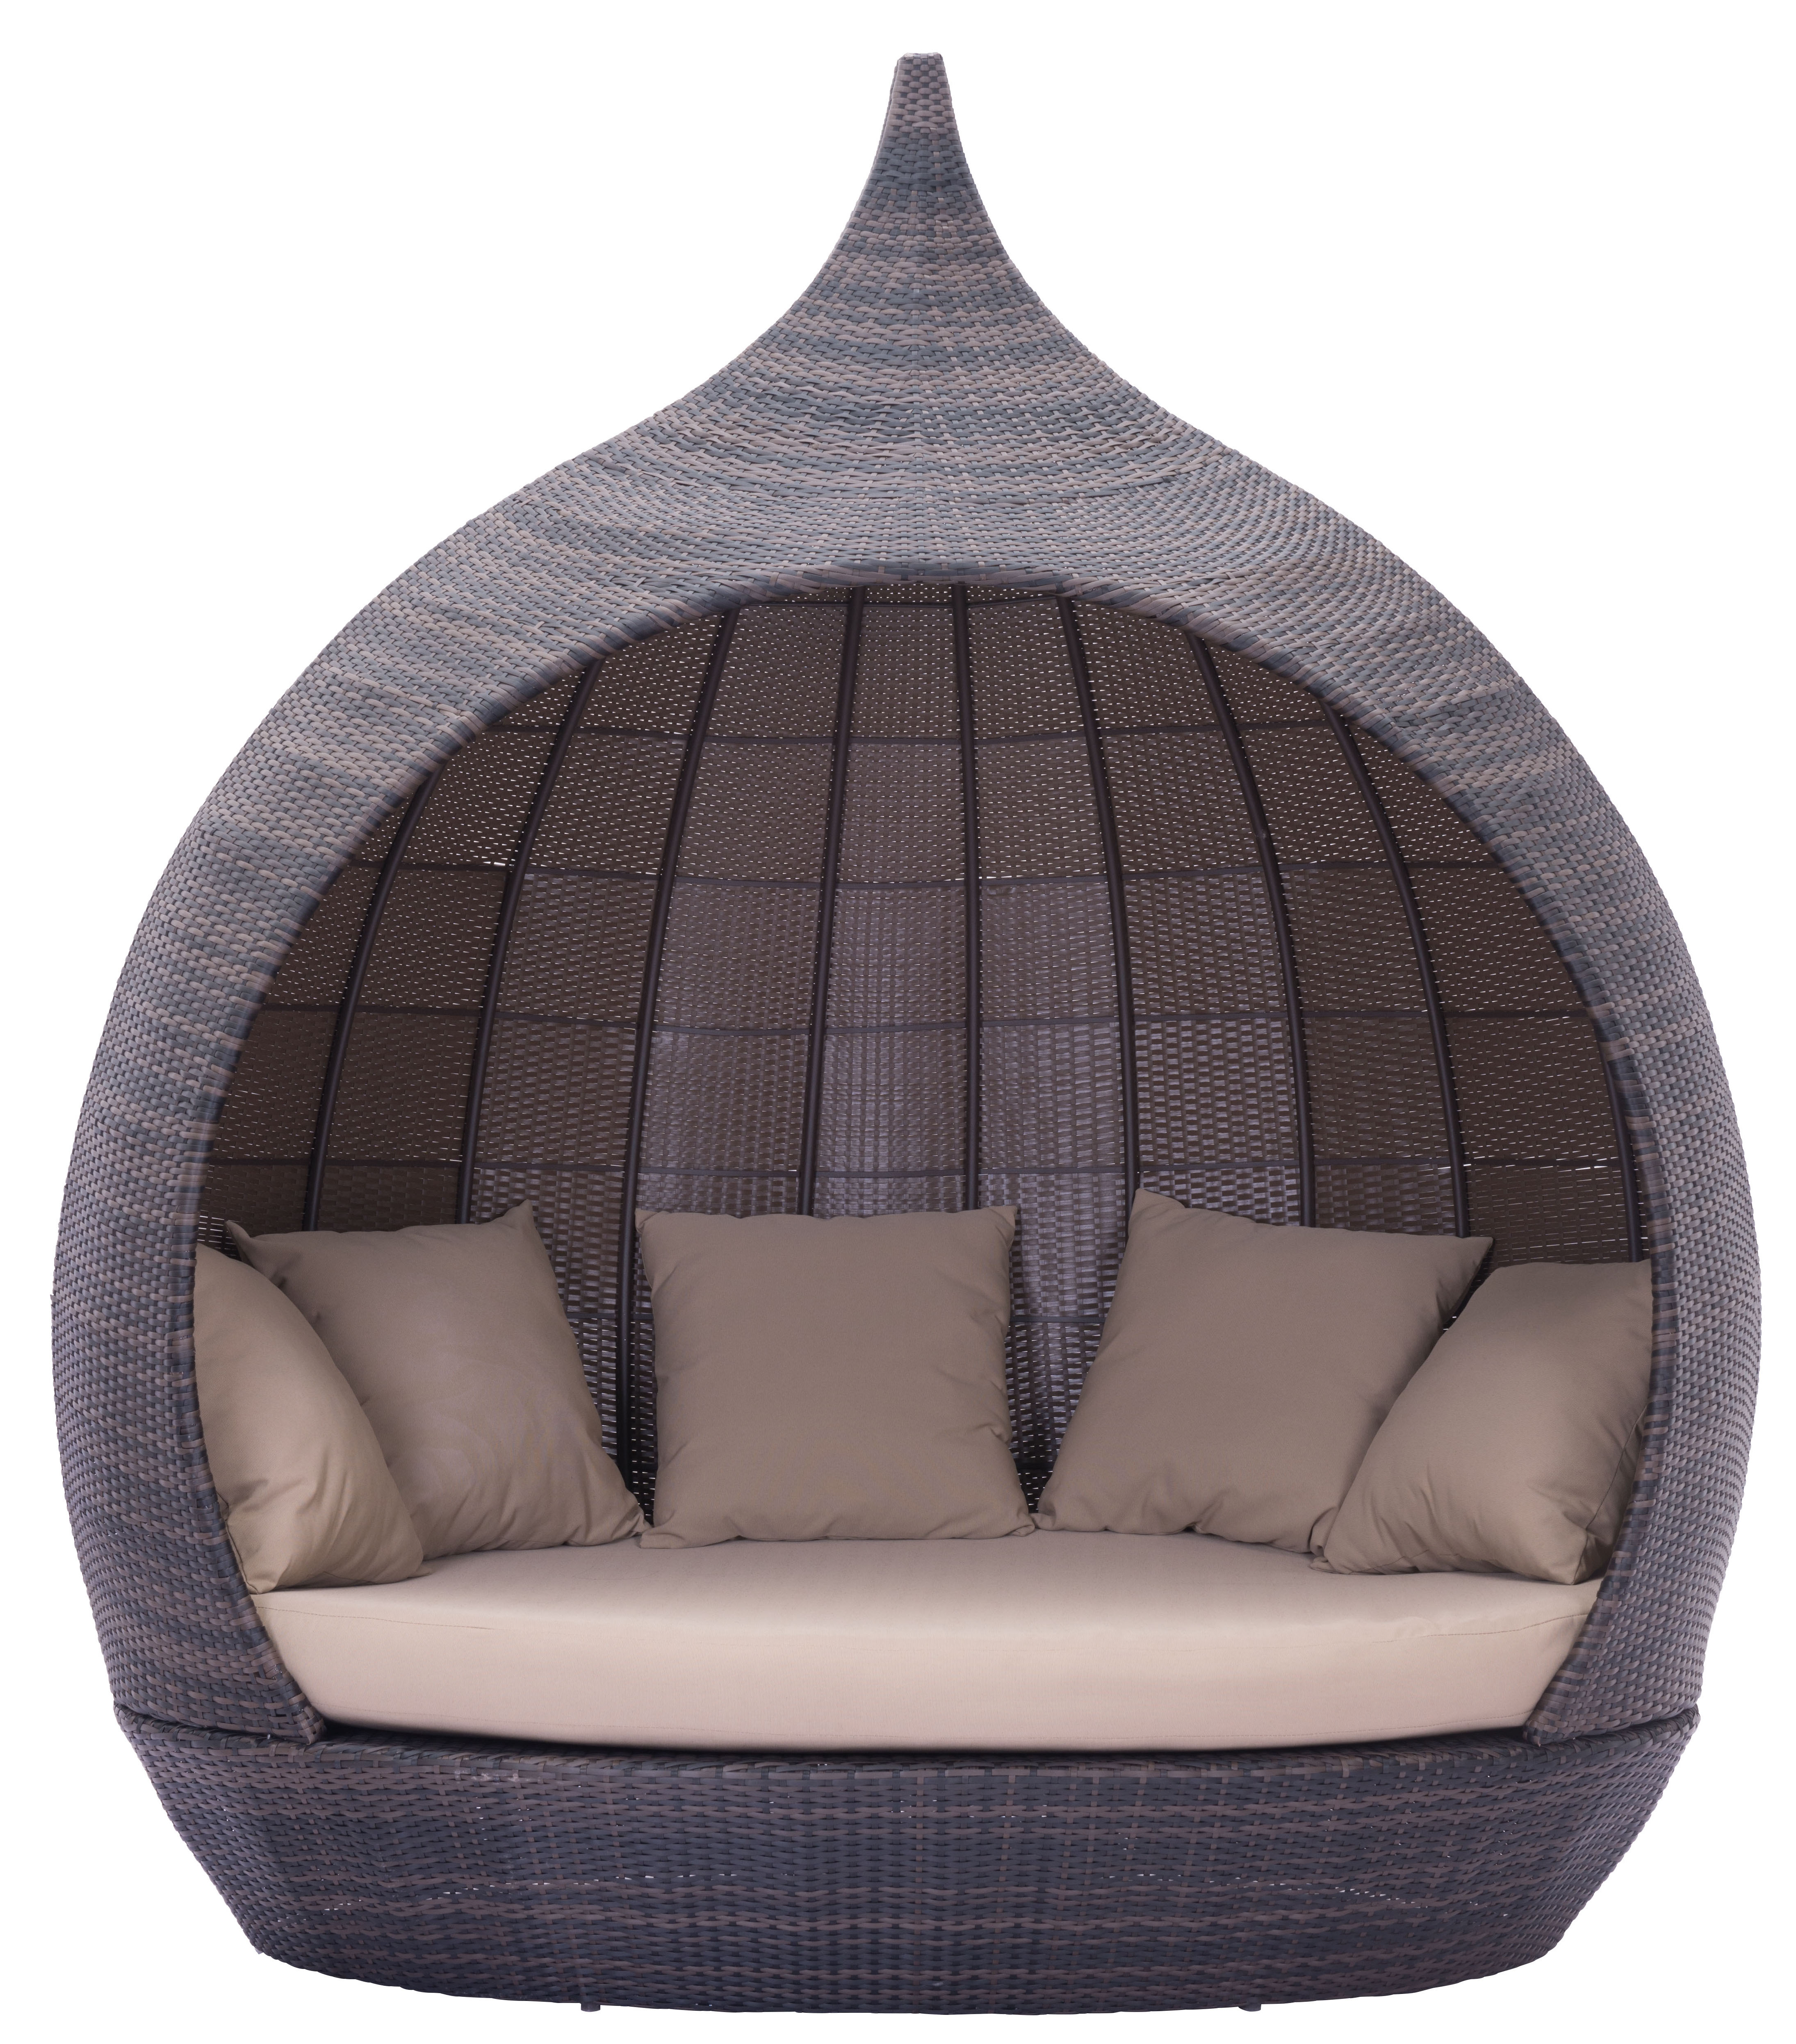 ... Martinique Beach Daybed Outdoor ...